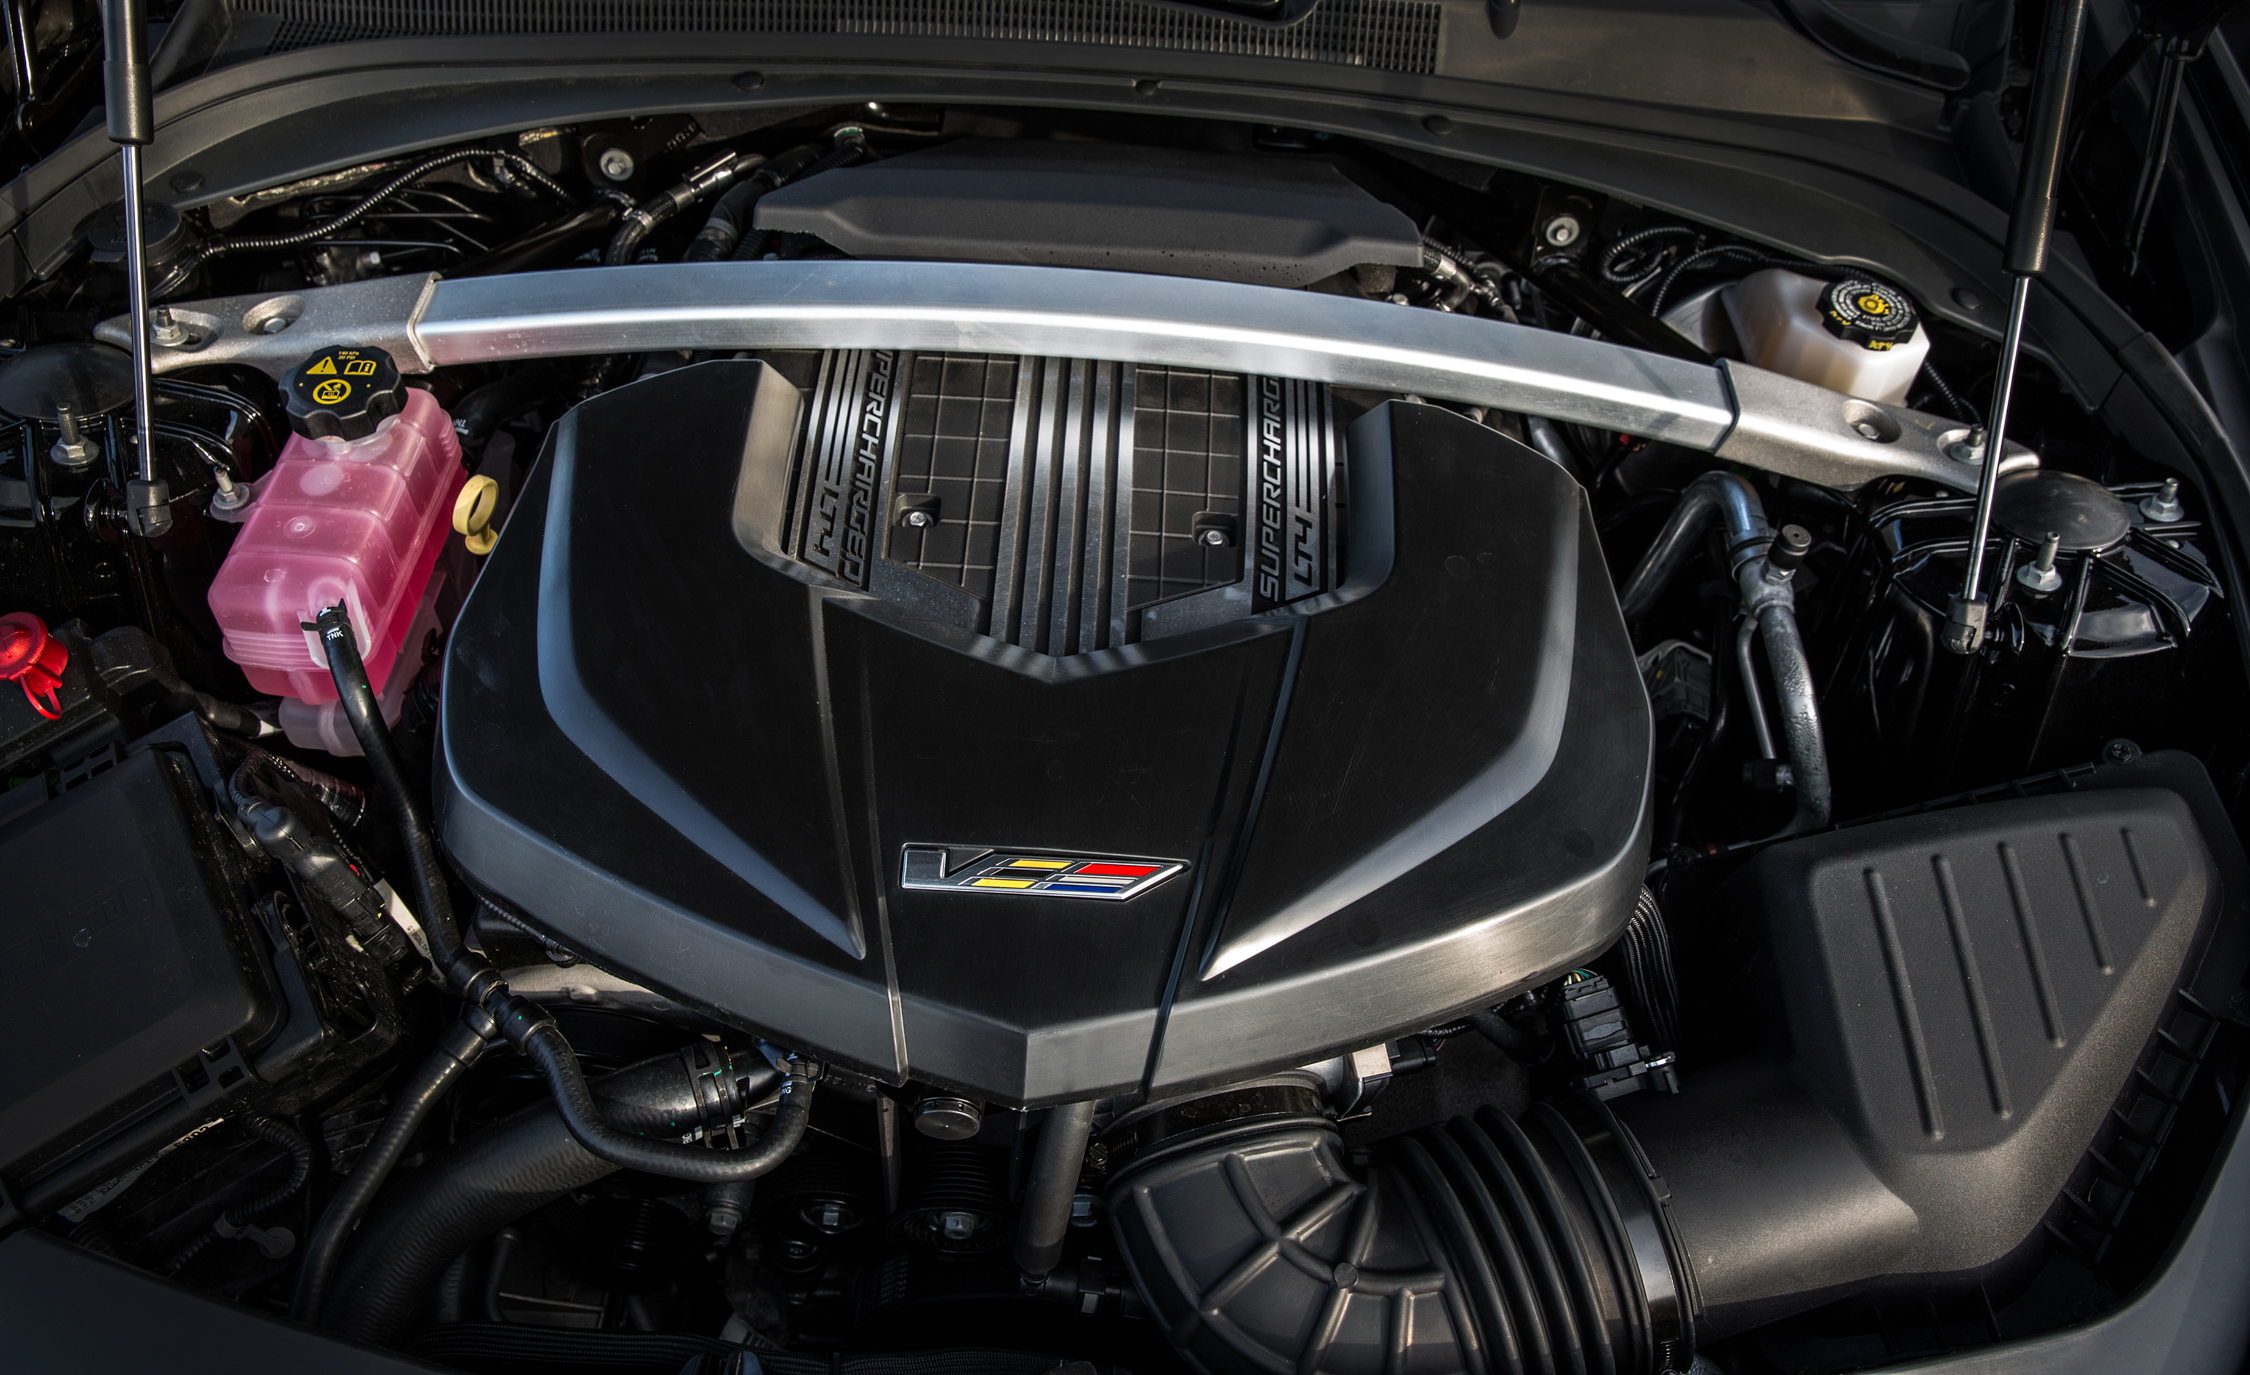 2016 Cadillac CTS-V Supercharged 6.2-Liter V-8 Engine